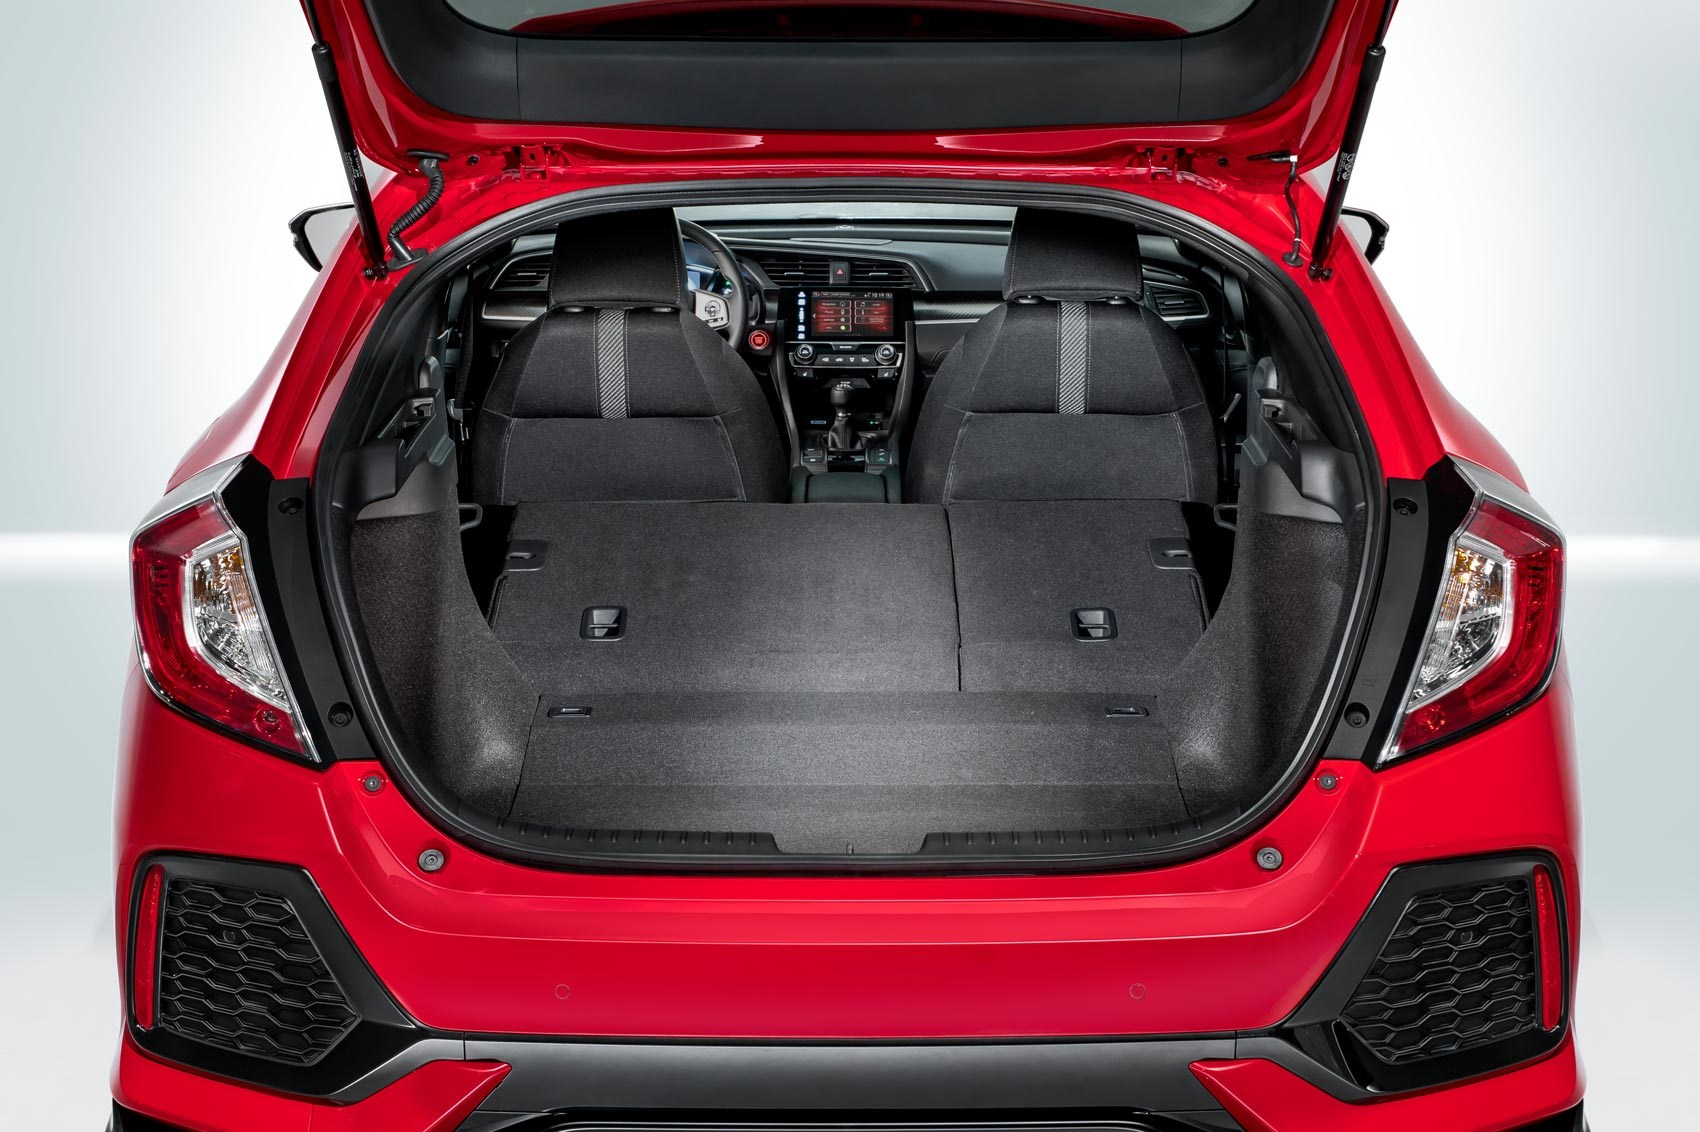 2017 civic hatchback cargo space best new cars for 2018 for Honda civic trunk